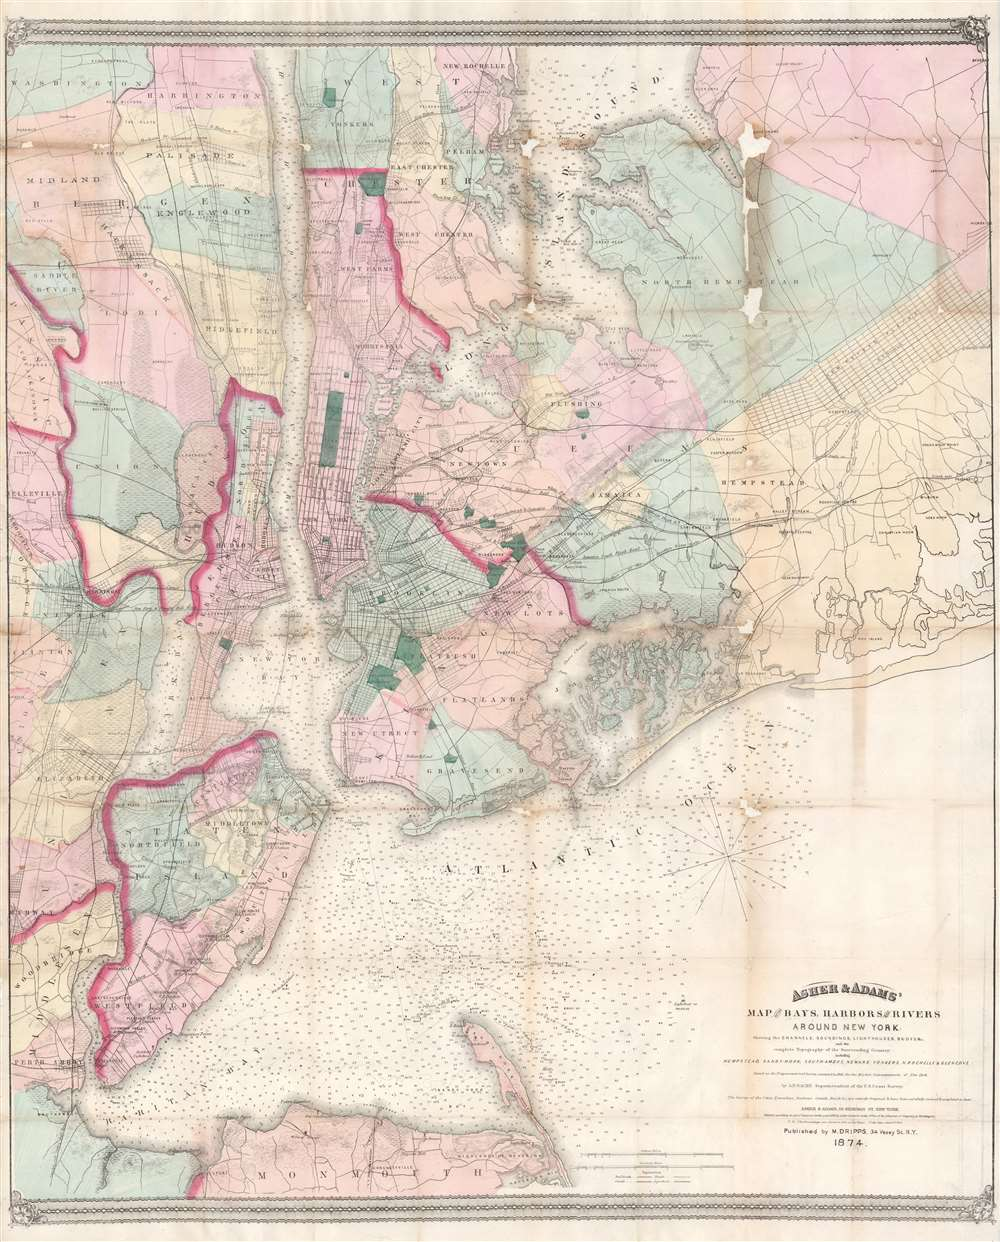 Asher & Adams' Map of the Bays, Harbors and Rivers Around New York: Showing the Channels, Soundings, Lighthouses, Bouys & c. and the Complete Topography of the Surrounding Country: including Hempstead, Sandy-Hook, South-Amboy, Neward, Yonkers, N. Rochelle & Glenn Cove.